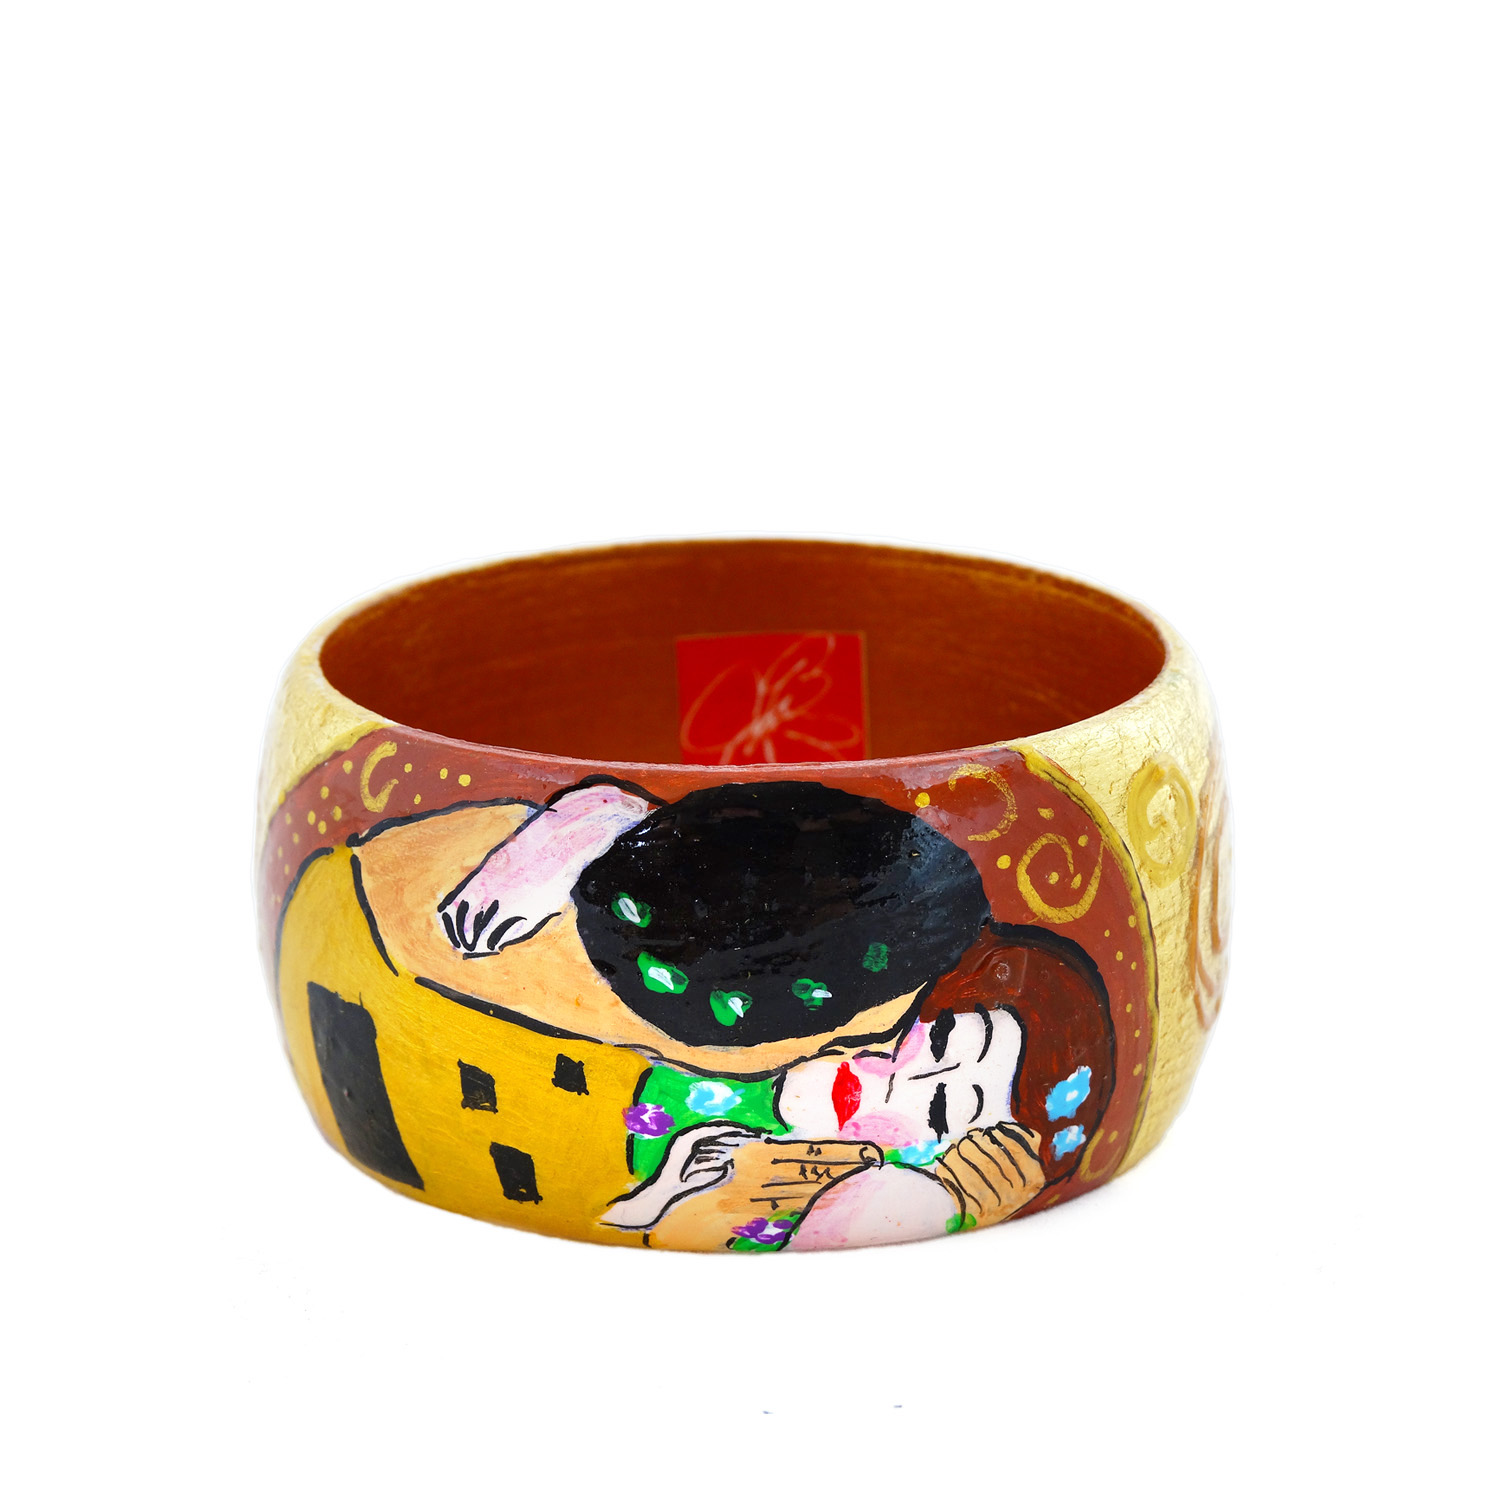 Hand-painted bangle - The Kiss by Klimt